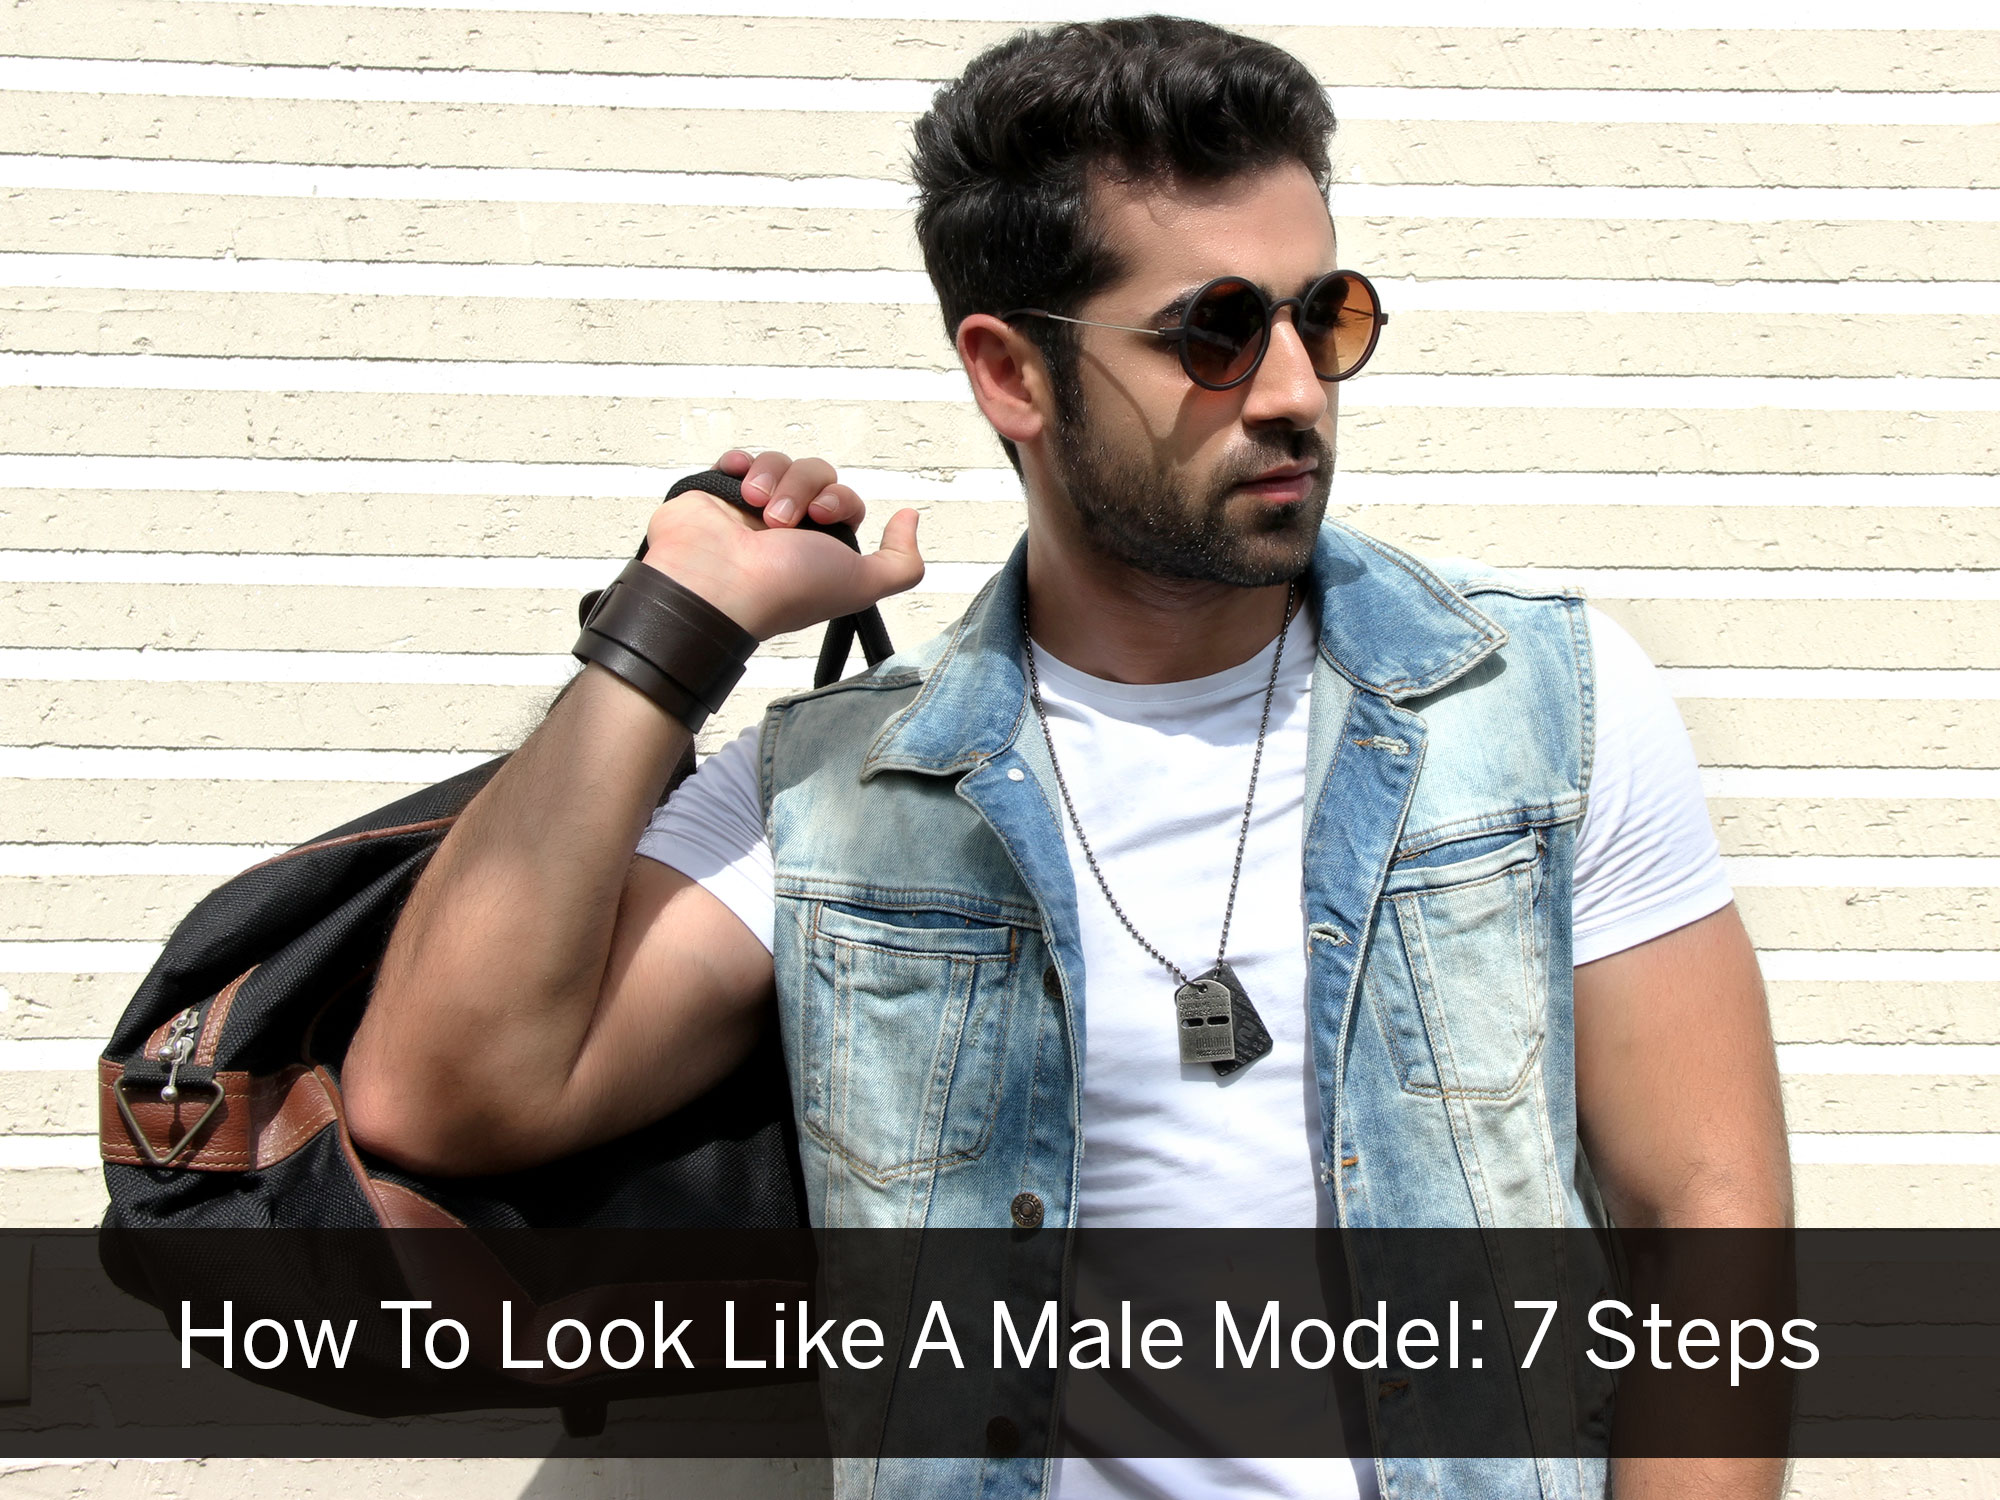 How To Look Like A Male Model : 7 Steps - Best Lifestyle Blog, men's fashion blog